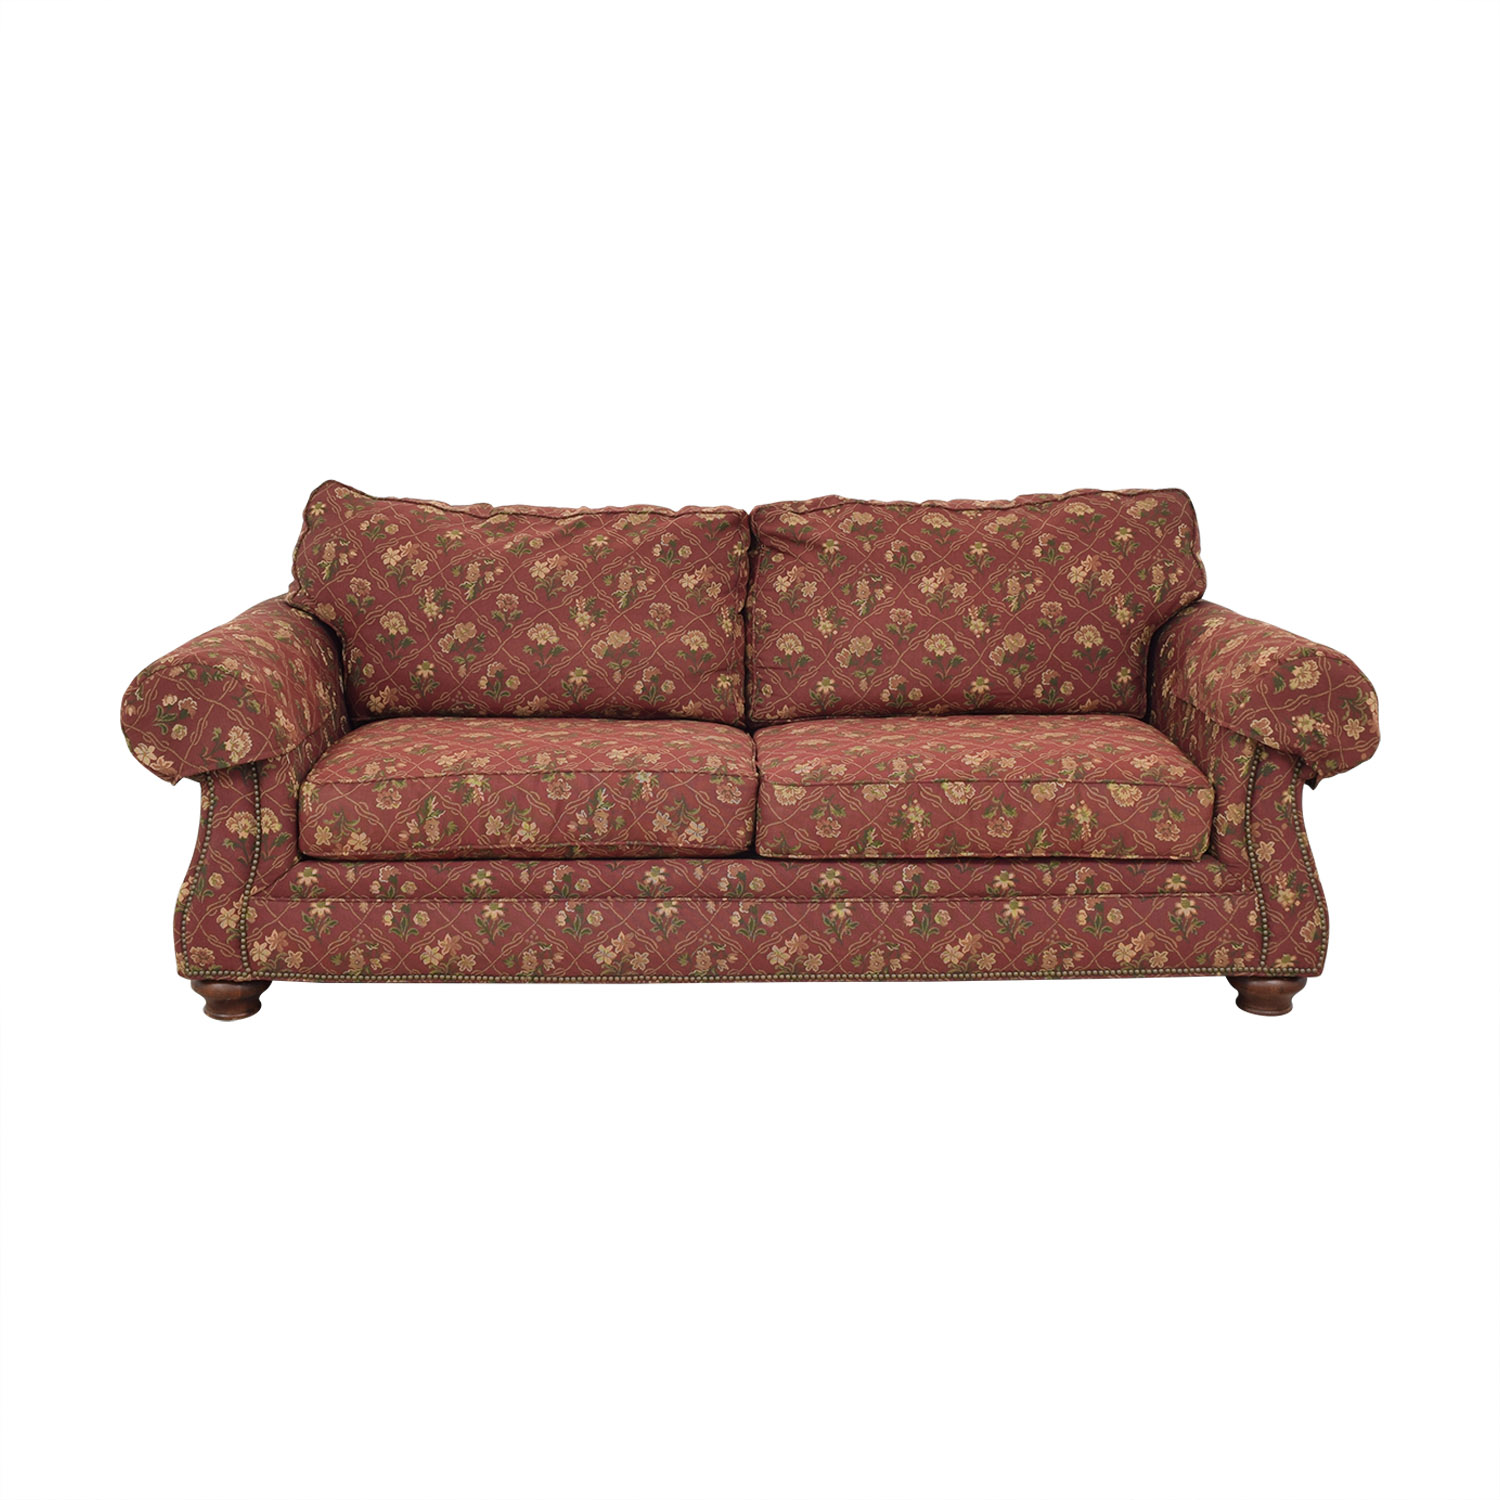 Broyhill Furniture Laramie Sofa sale